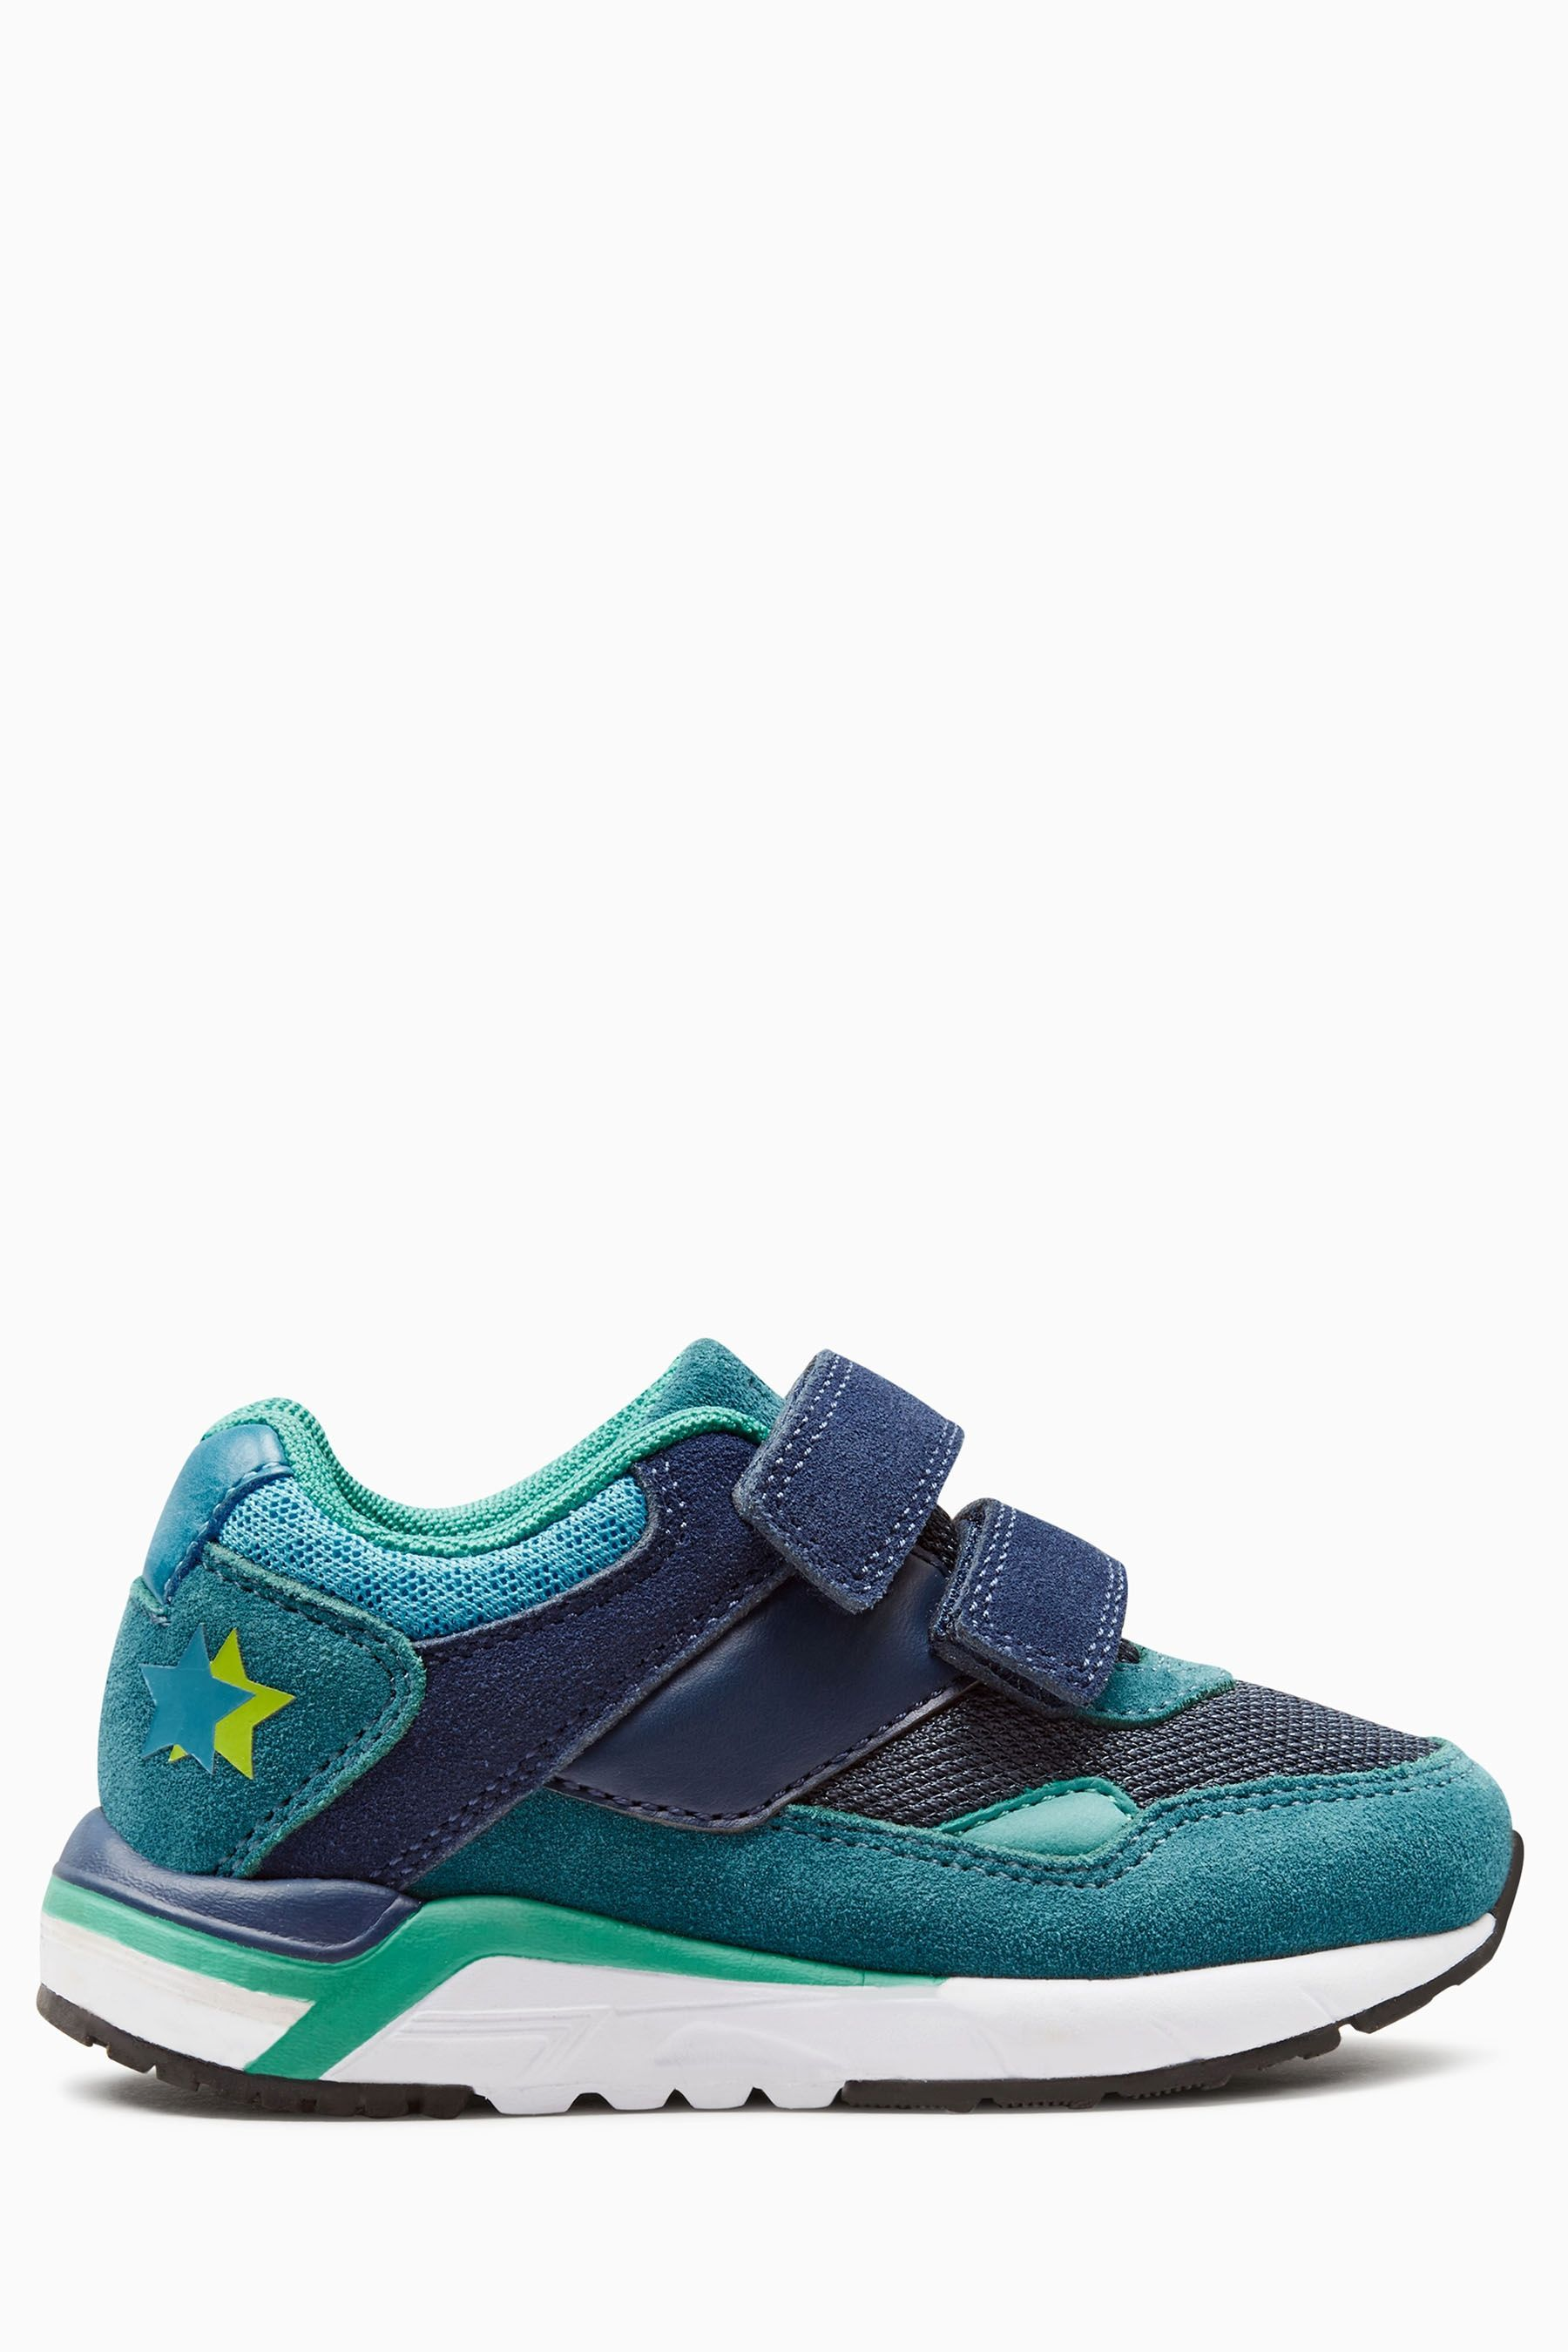 Buy Teal Marathon Trainers (Younger